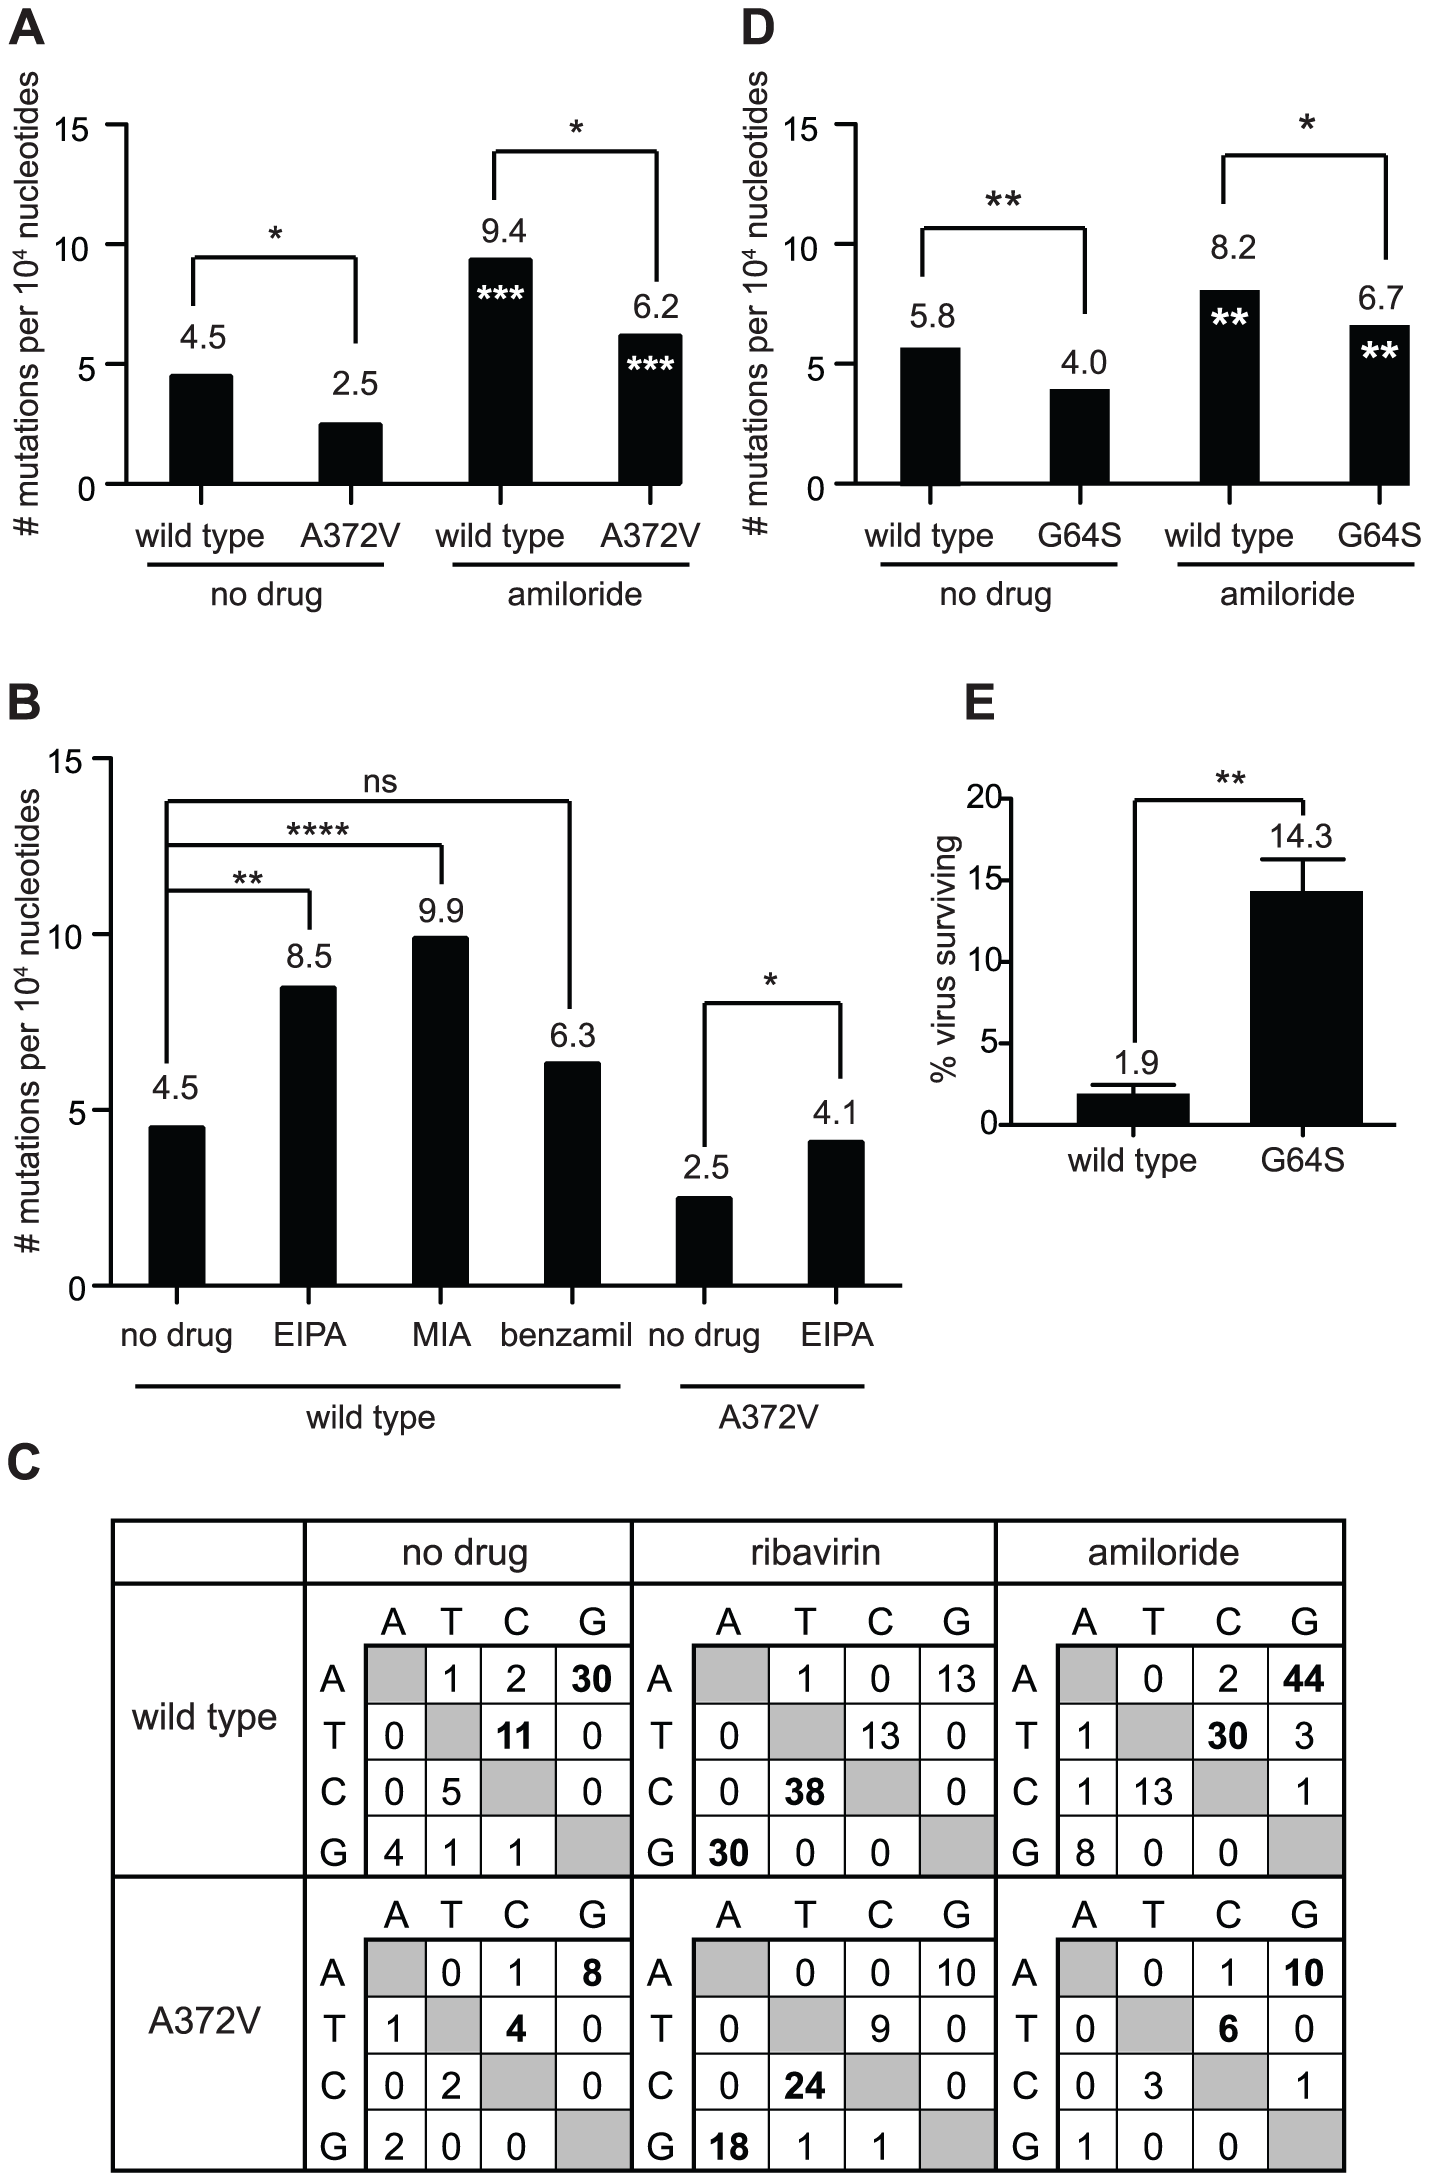 Amiloride has RNA mutagenic activity to which high fidelity RdRp variants of picornaviruses resist.